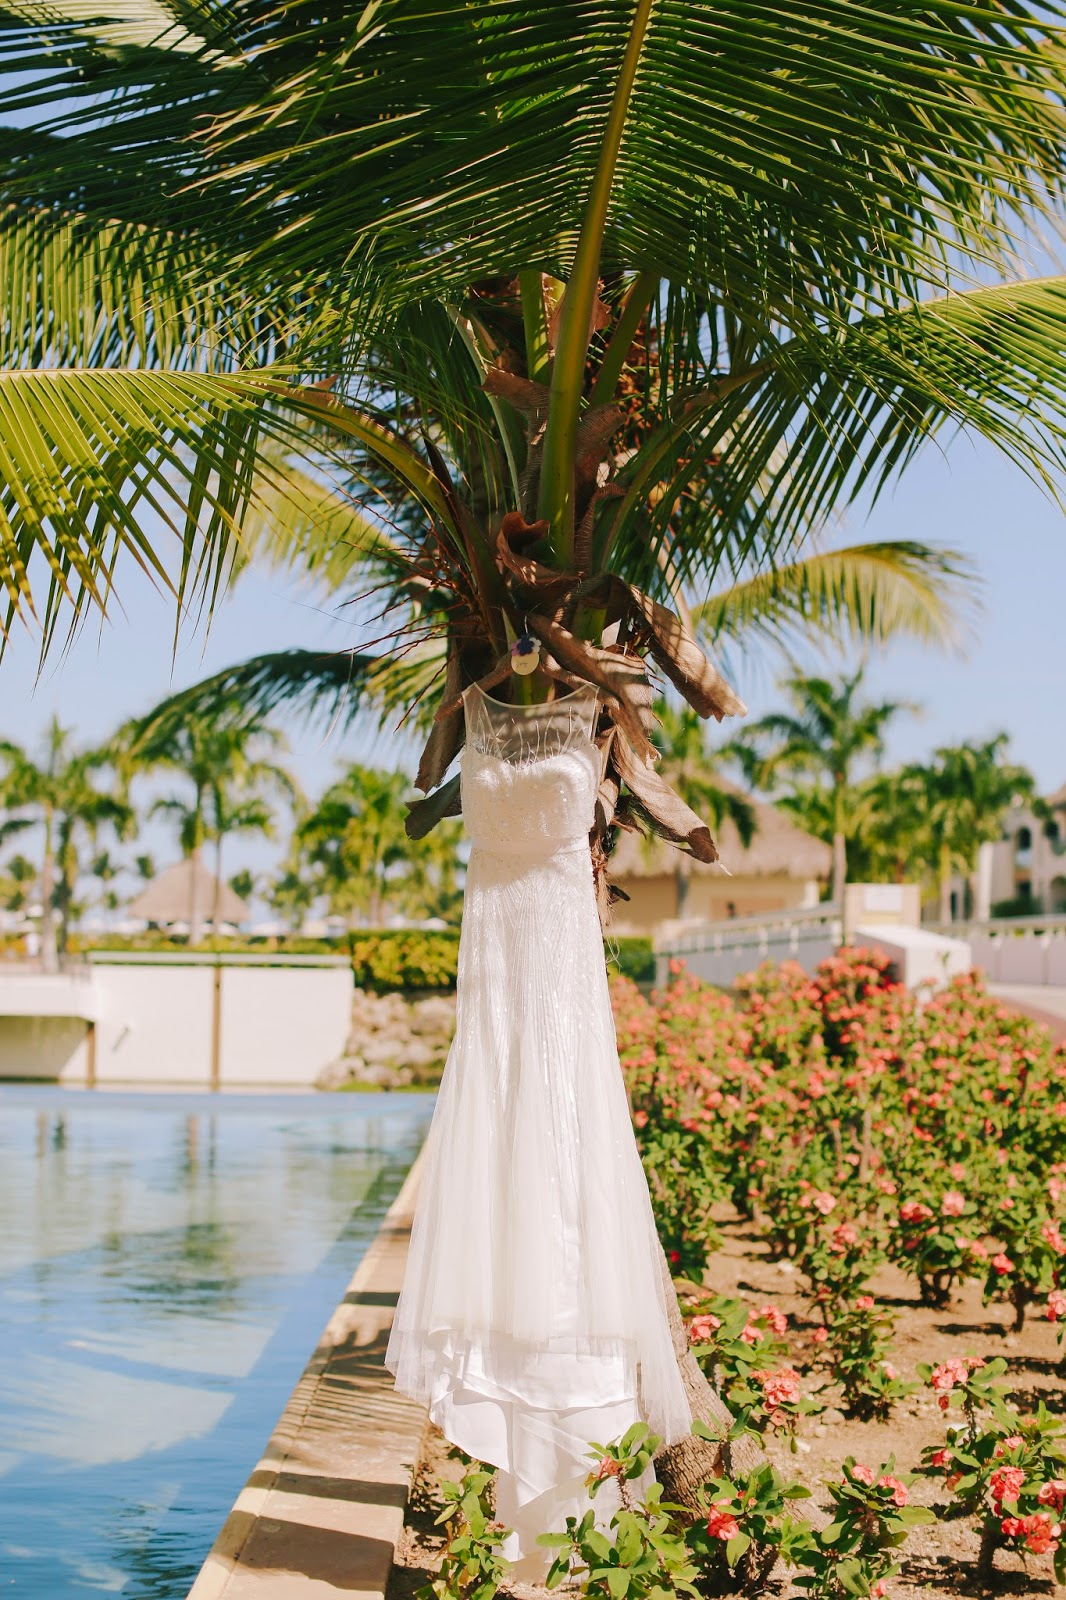 miami fashion blogger, fashion blogger, nany's klozet, daniela ramirez, midi skirt, crop top, how to wear, fashion trends,  wedding, wedding hair, rosa clara dress, tresemme, punta cana wedding